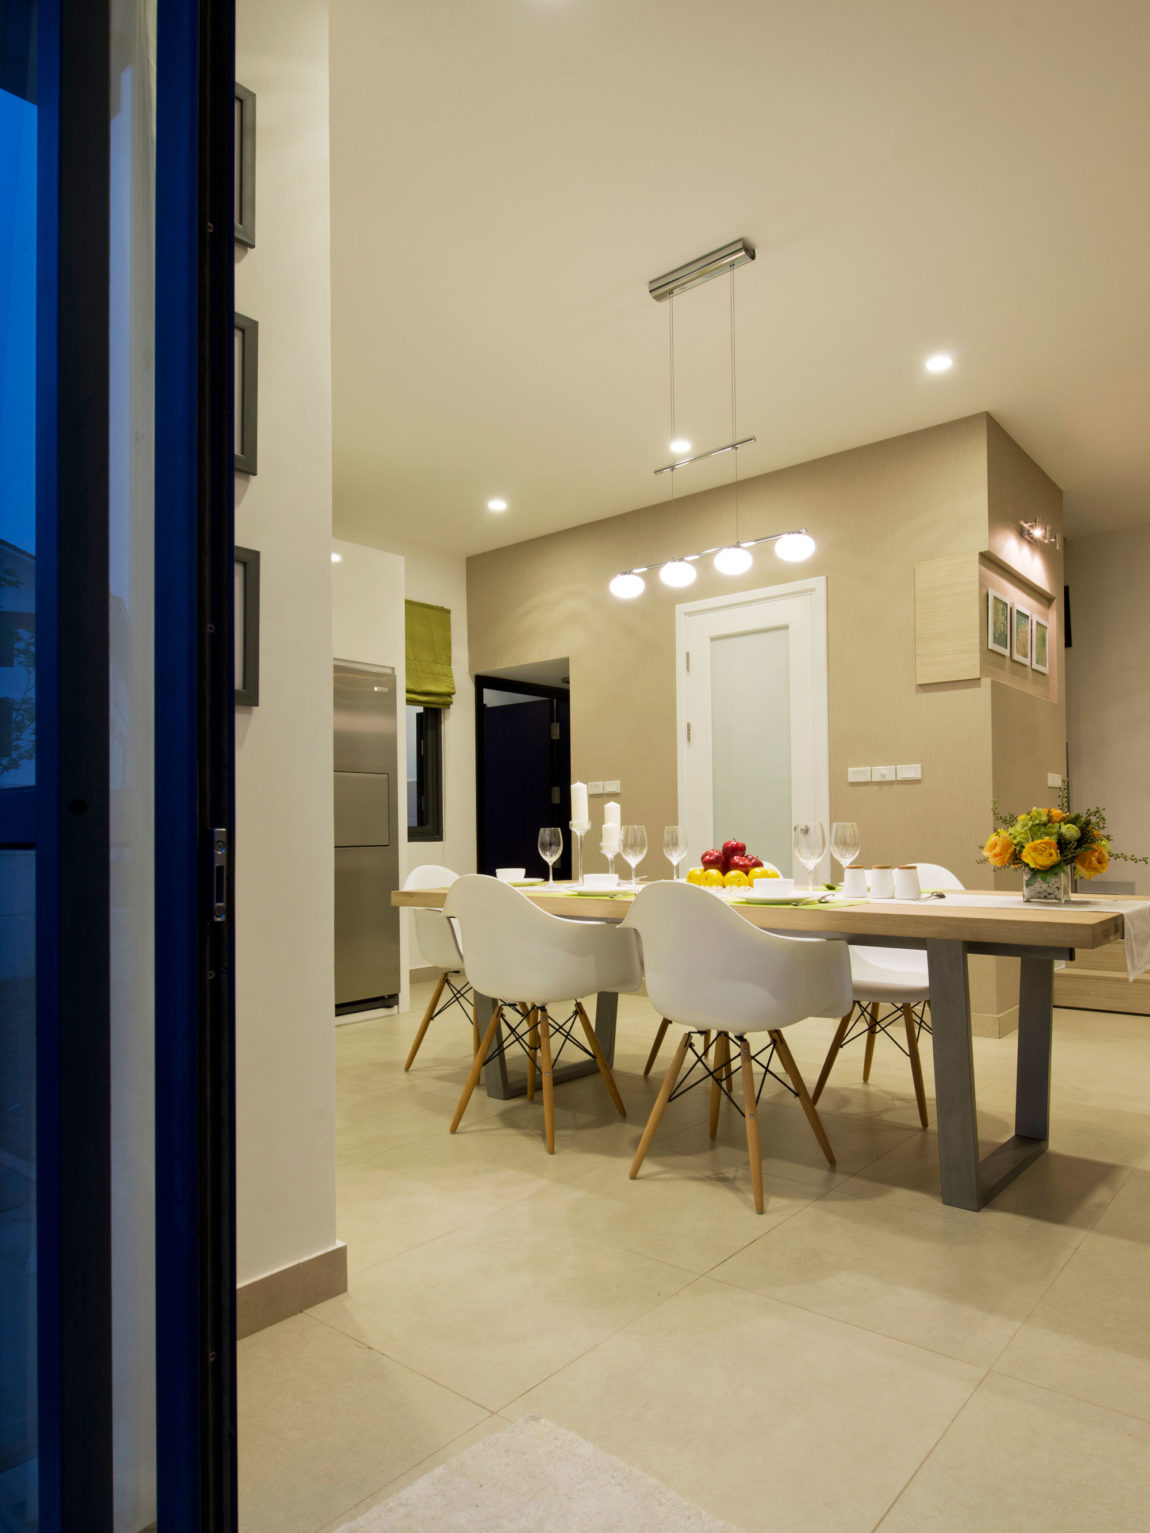 Small Terrace House by Landmak Architecture (18)